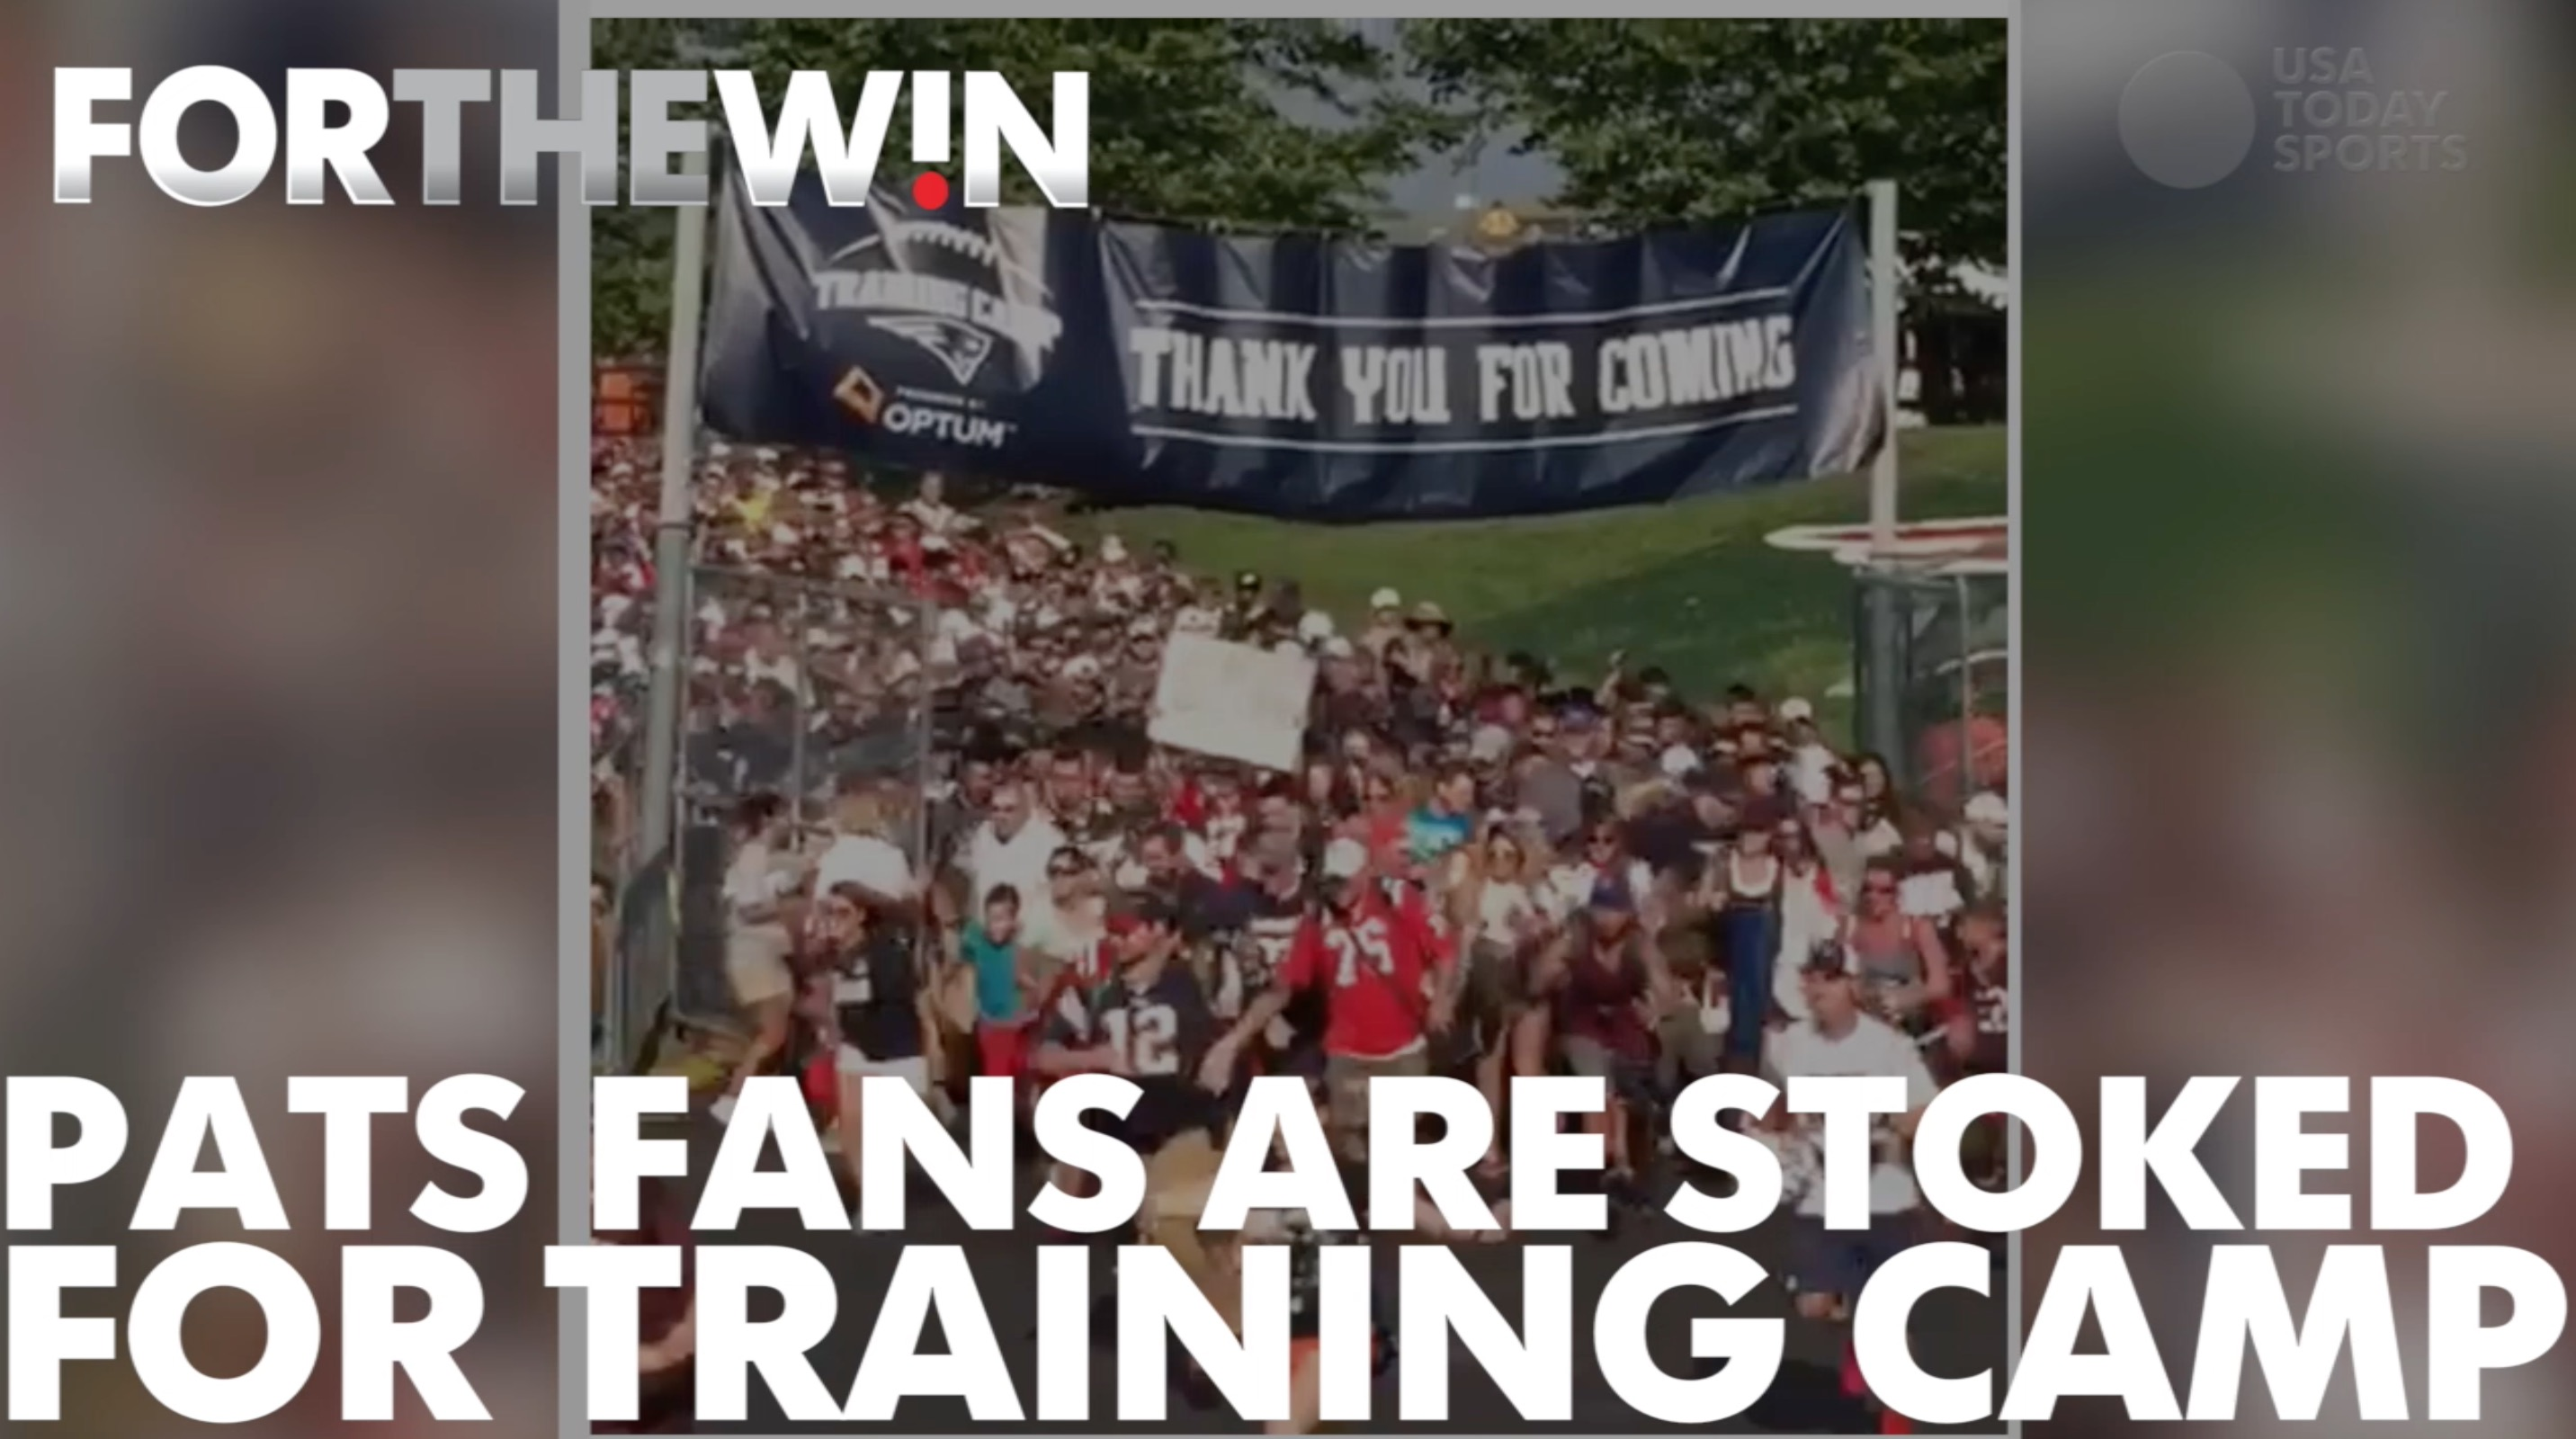 Patriots fans are stoked for training camp